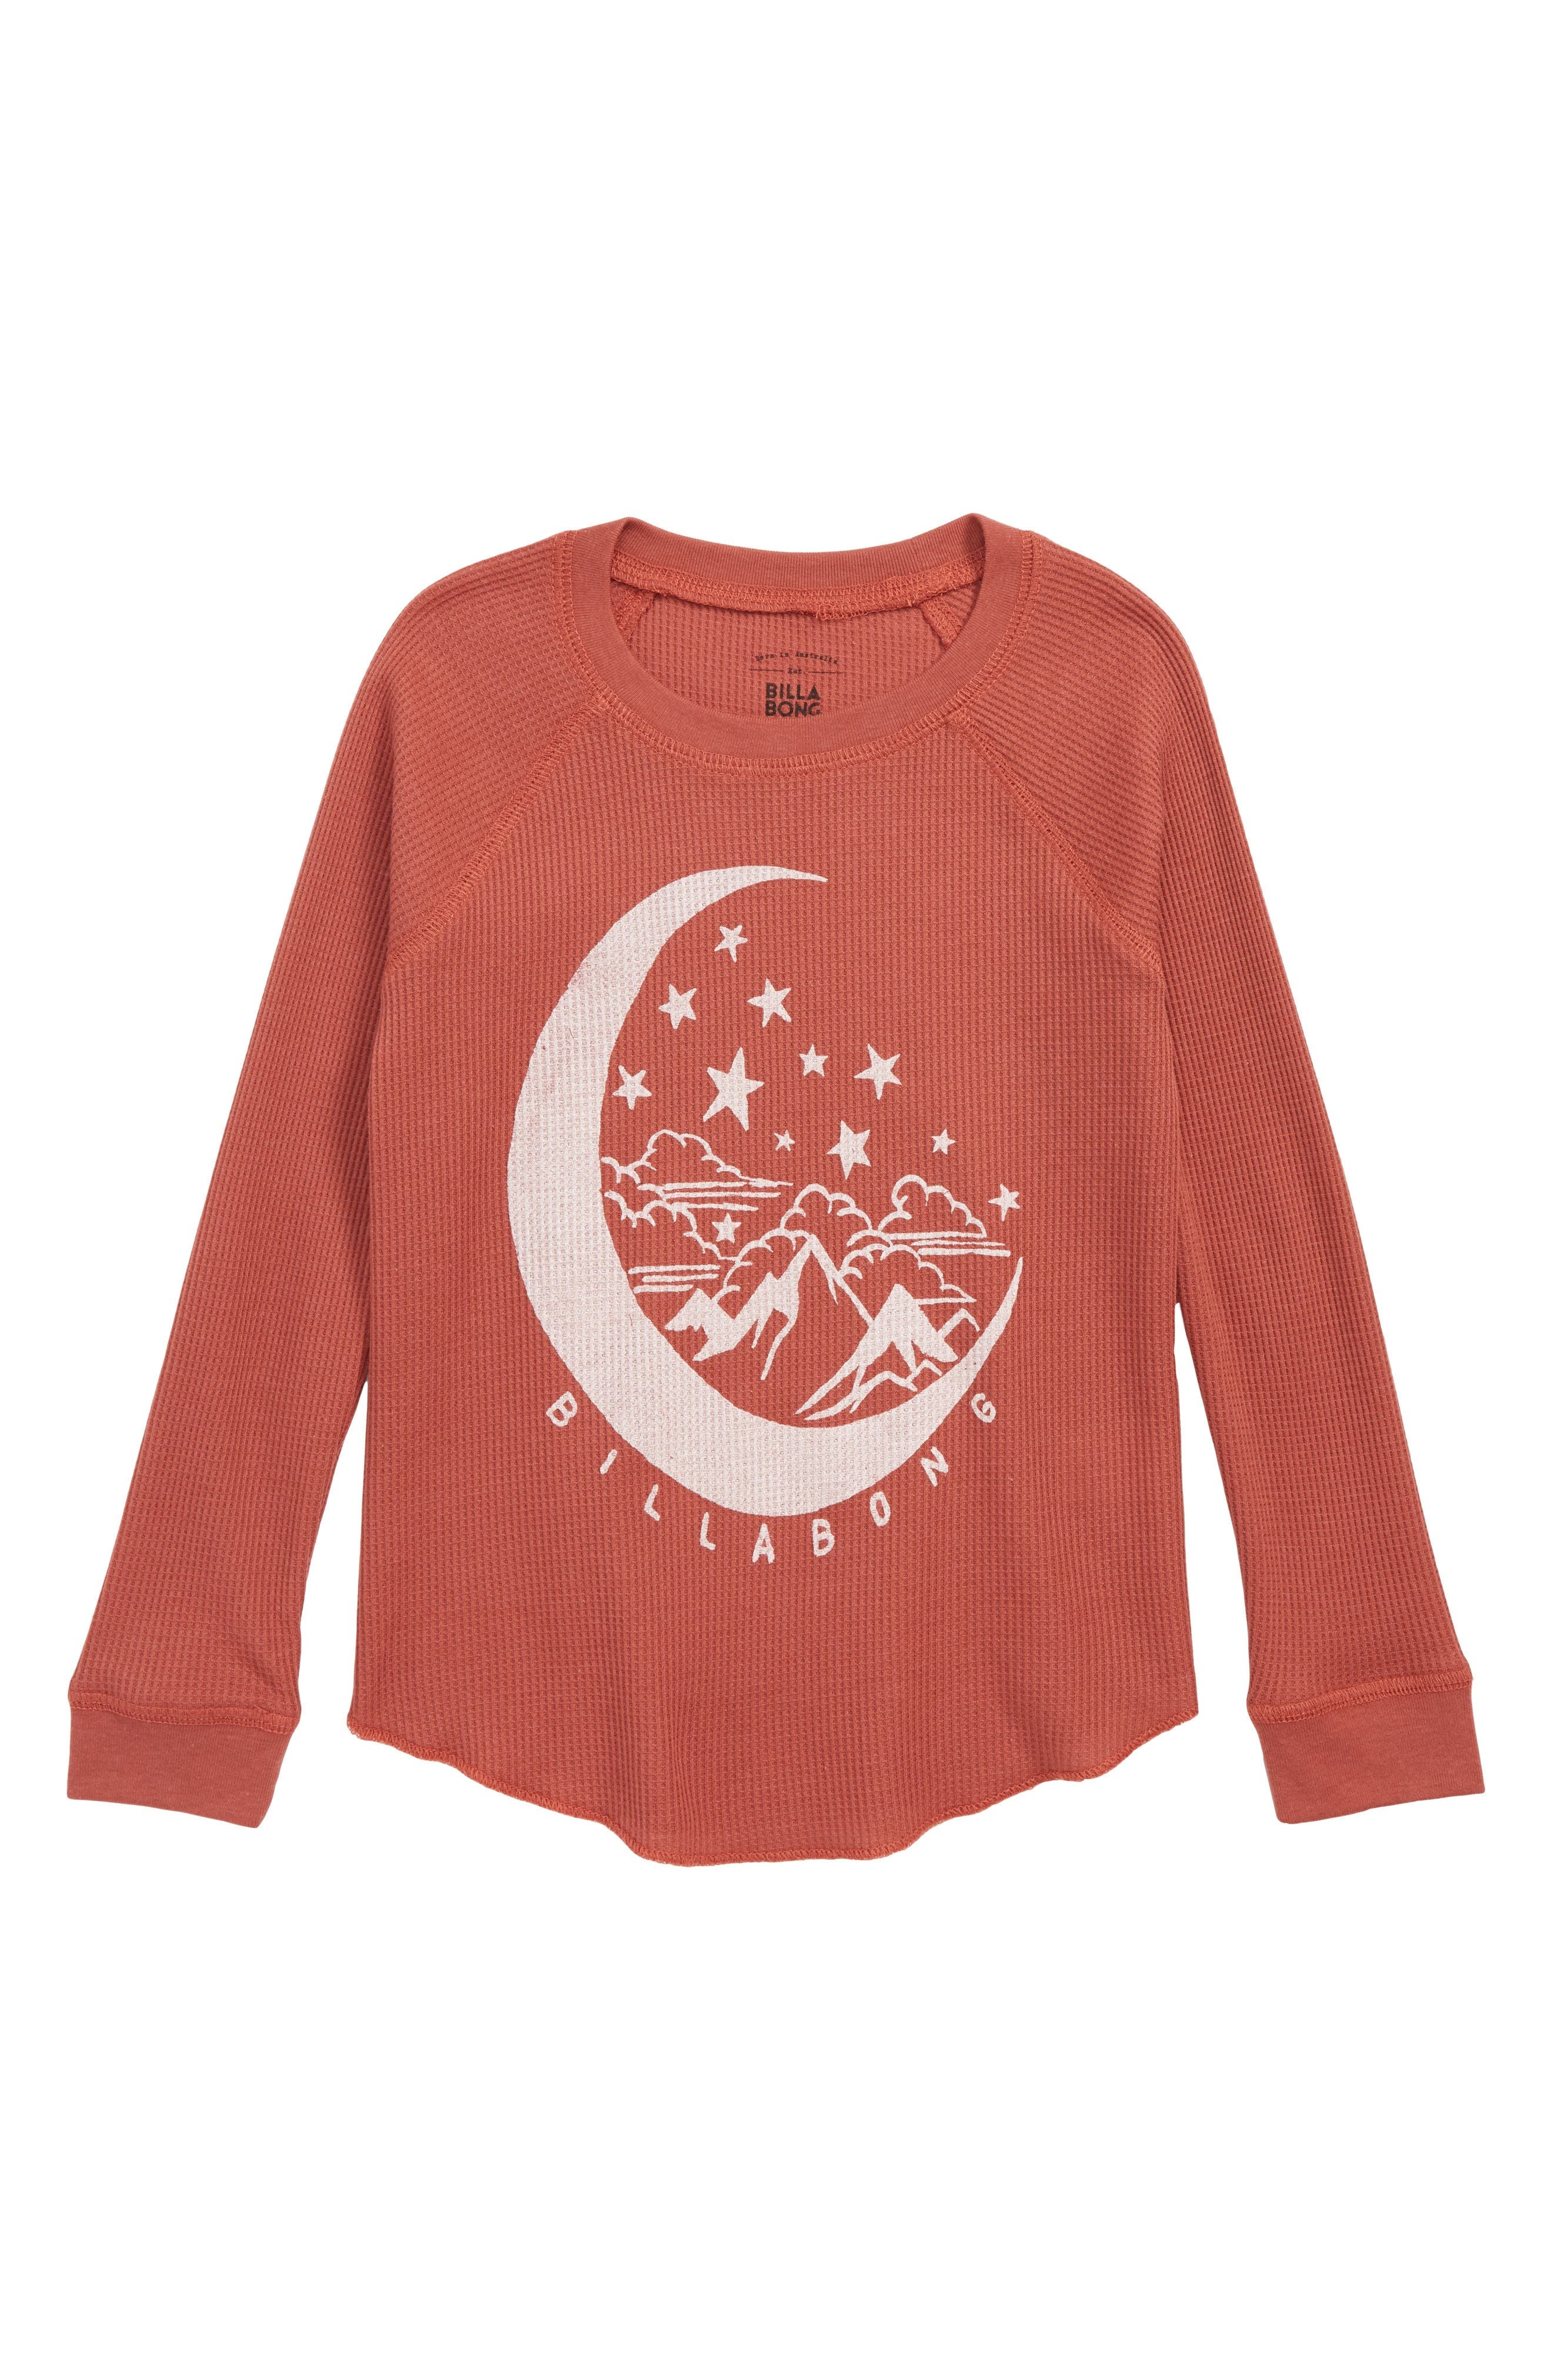 Over the Moon Thermal Tee,                         Main,                         color, 602